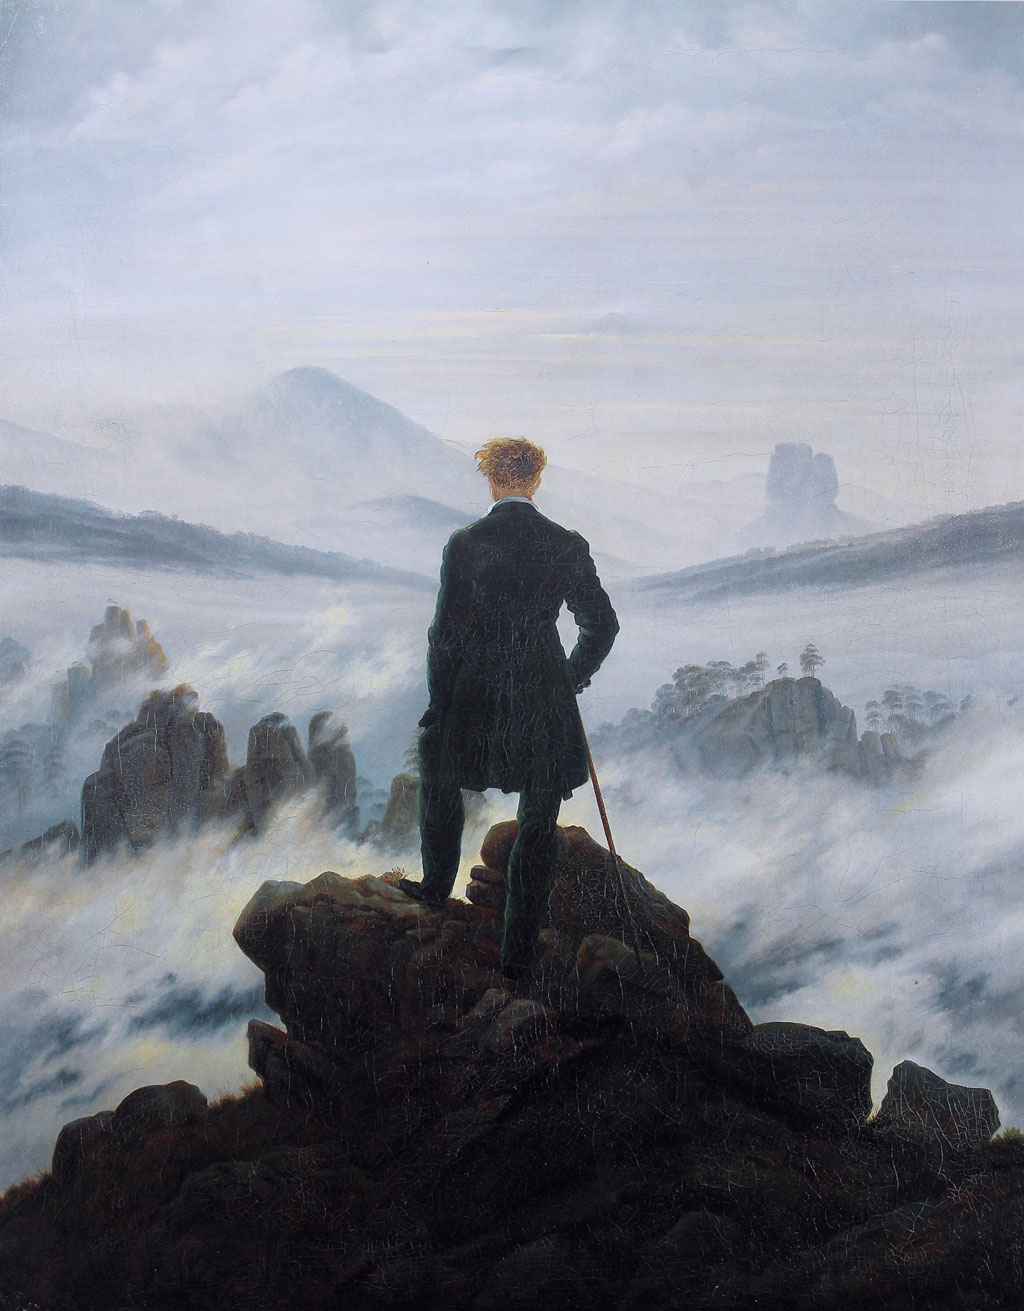 Man in a waistcoat standing on a cliff, holding a cane, and looking into a rocky valley covered in clouds